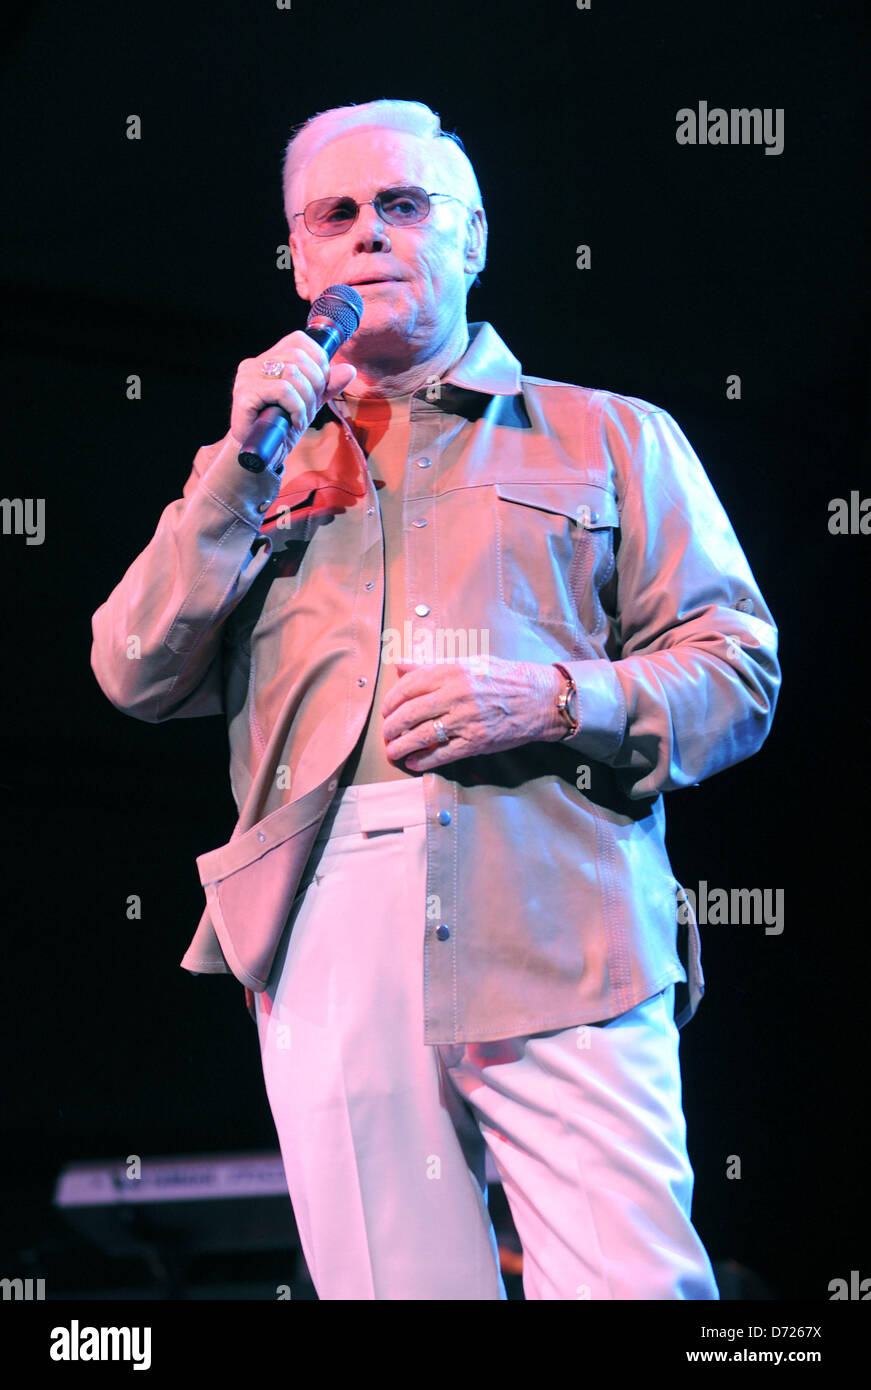 Nashville, Tennessee, U.S. April 26, 2013. Country superstar George Jones, known for hits including 'He Stopped - Stock Image